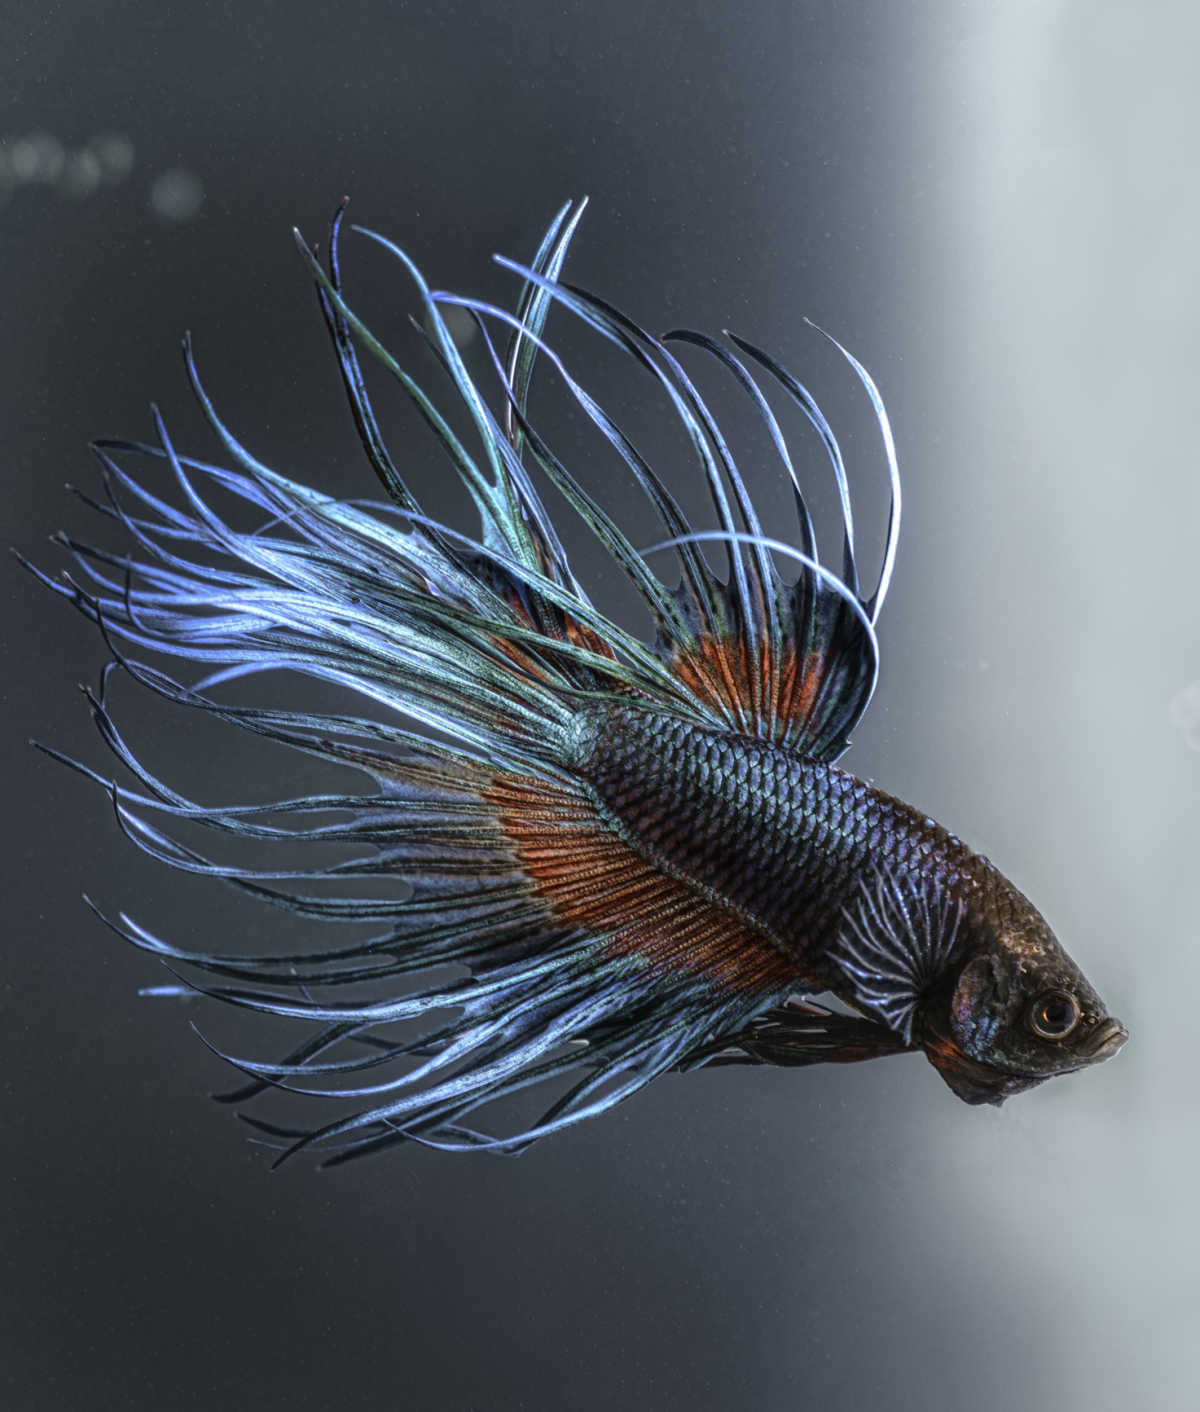 10 Cool Facts About Betta Fish   Mom.com